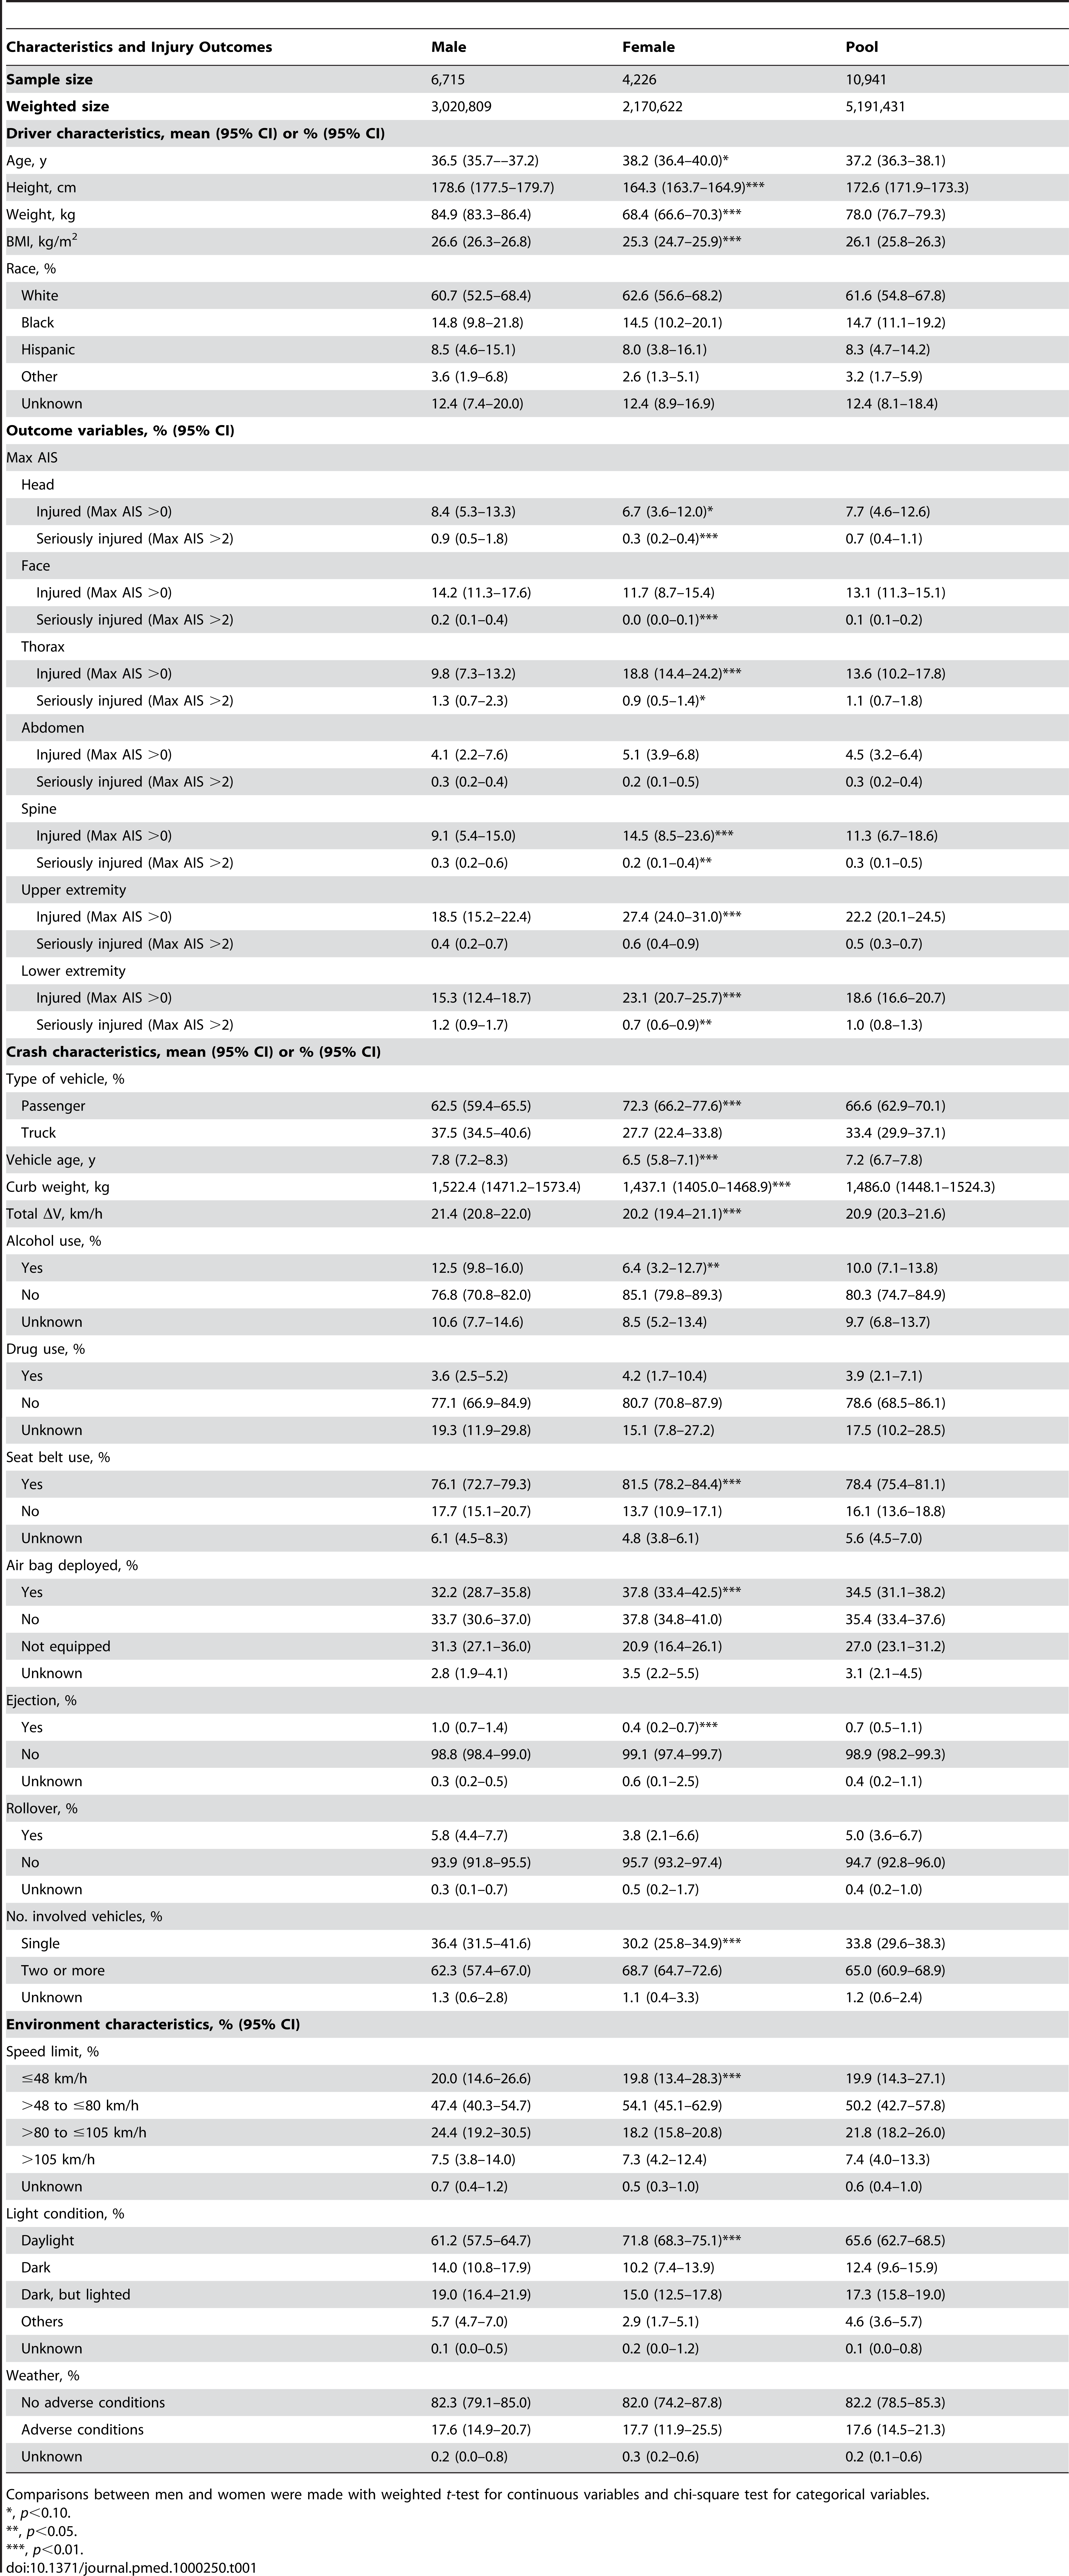 Sample characteristics and injury outcomes, by sex.